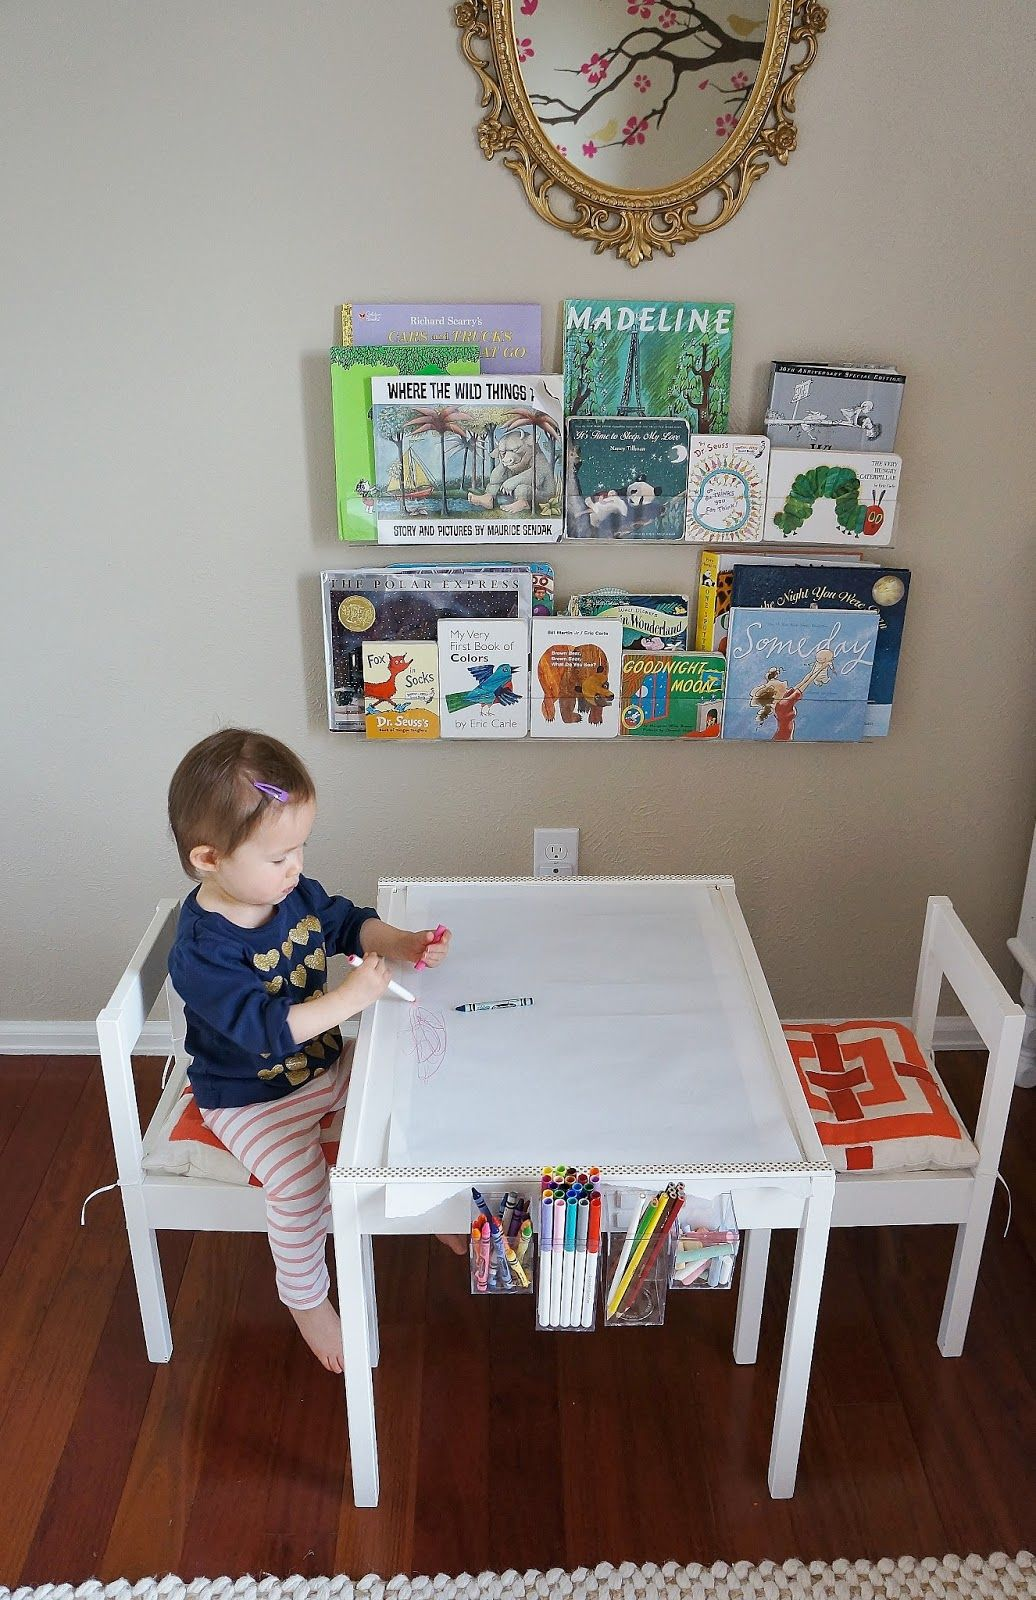 Beau { DIY } Ikea Lätt Hack: Craft Table With Paper Roll, Trim To Hold Paper In  Place, And Clear Plastic Containers To Hold Art Supplies